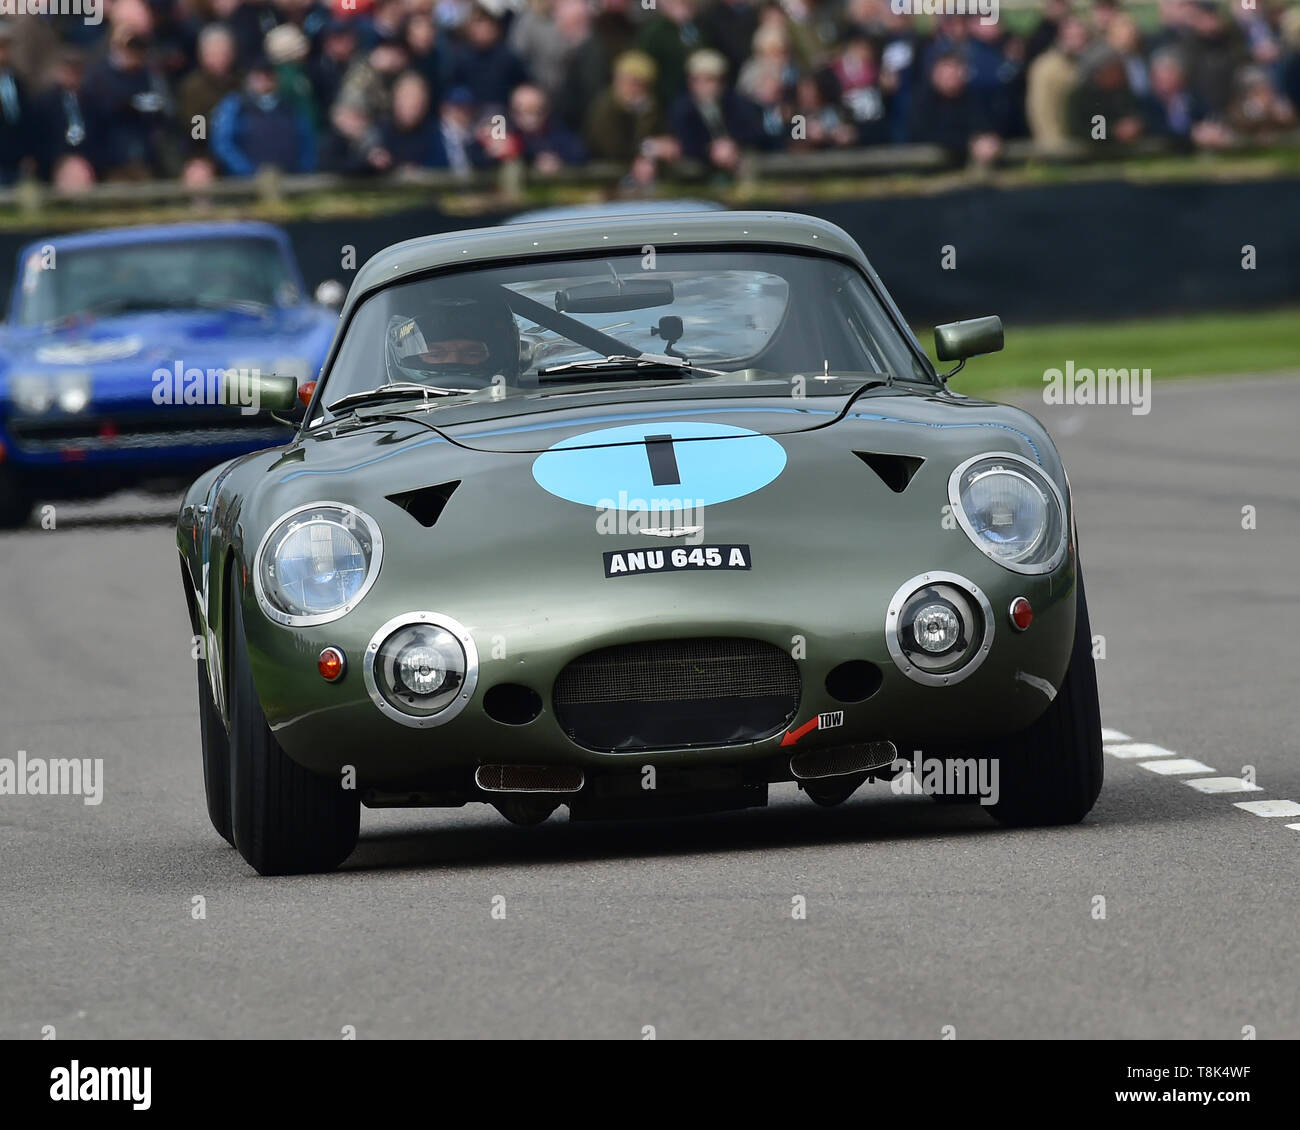 Wolfgang Friedrichs, Simon Hadfield, Aston Martin DP214, Graham Hill Trophy, Closed cockpit GT cars, Prototype cars, Spirit of the RAC TT Races 1960-1 - Stock Image